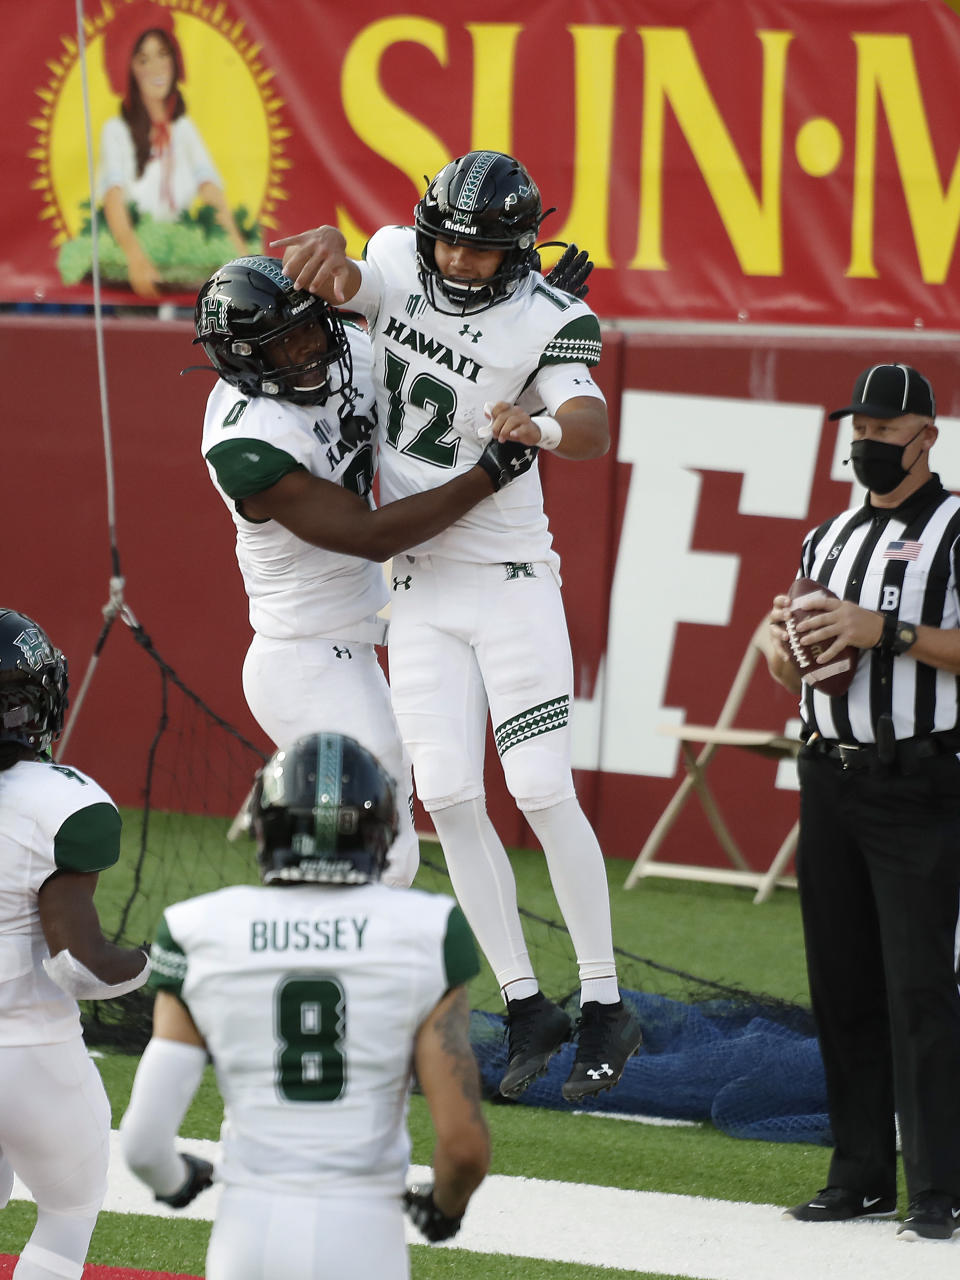 Hawaii quarterback Chevan Cordeiro, right, celebrates his touchdown with running back Dae Dae Hunter against Fresno State quarterback during the first half of an NCAA college football game in Fresno, Calif., Saturday, Oct. 24, 2020. (AP Photo/Gary Kazanjian)